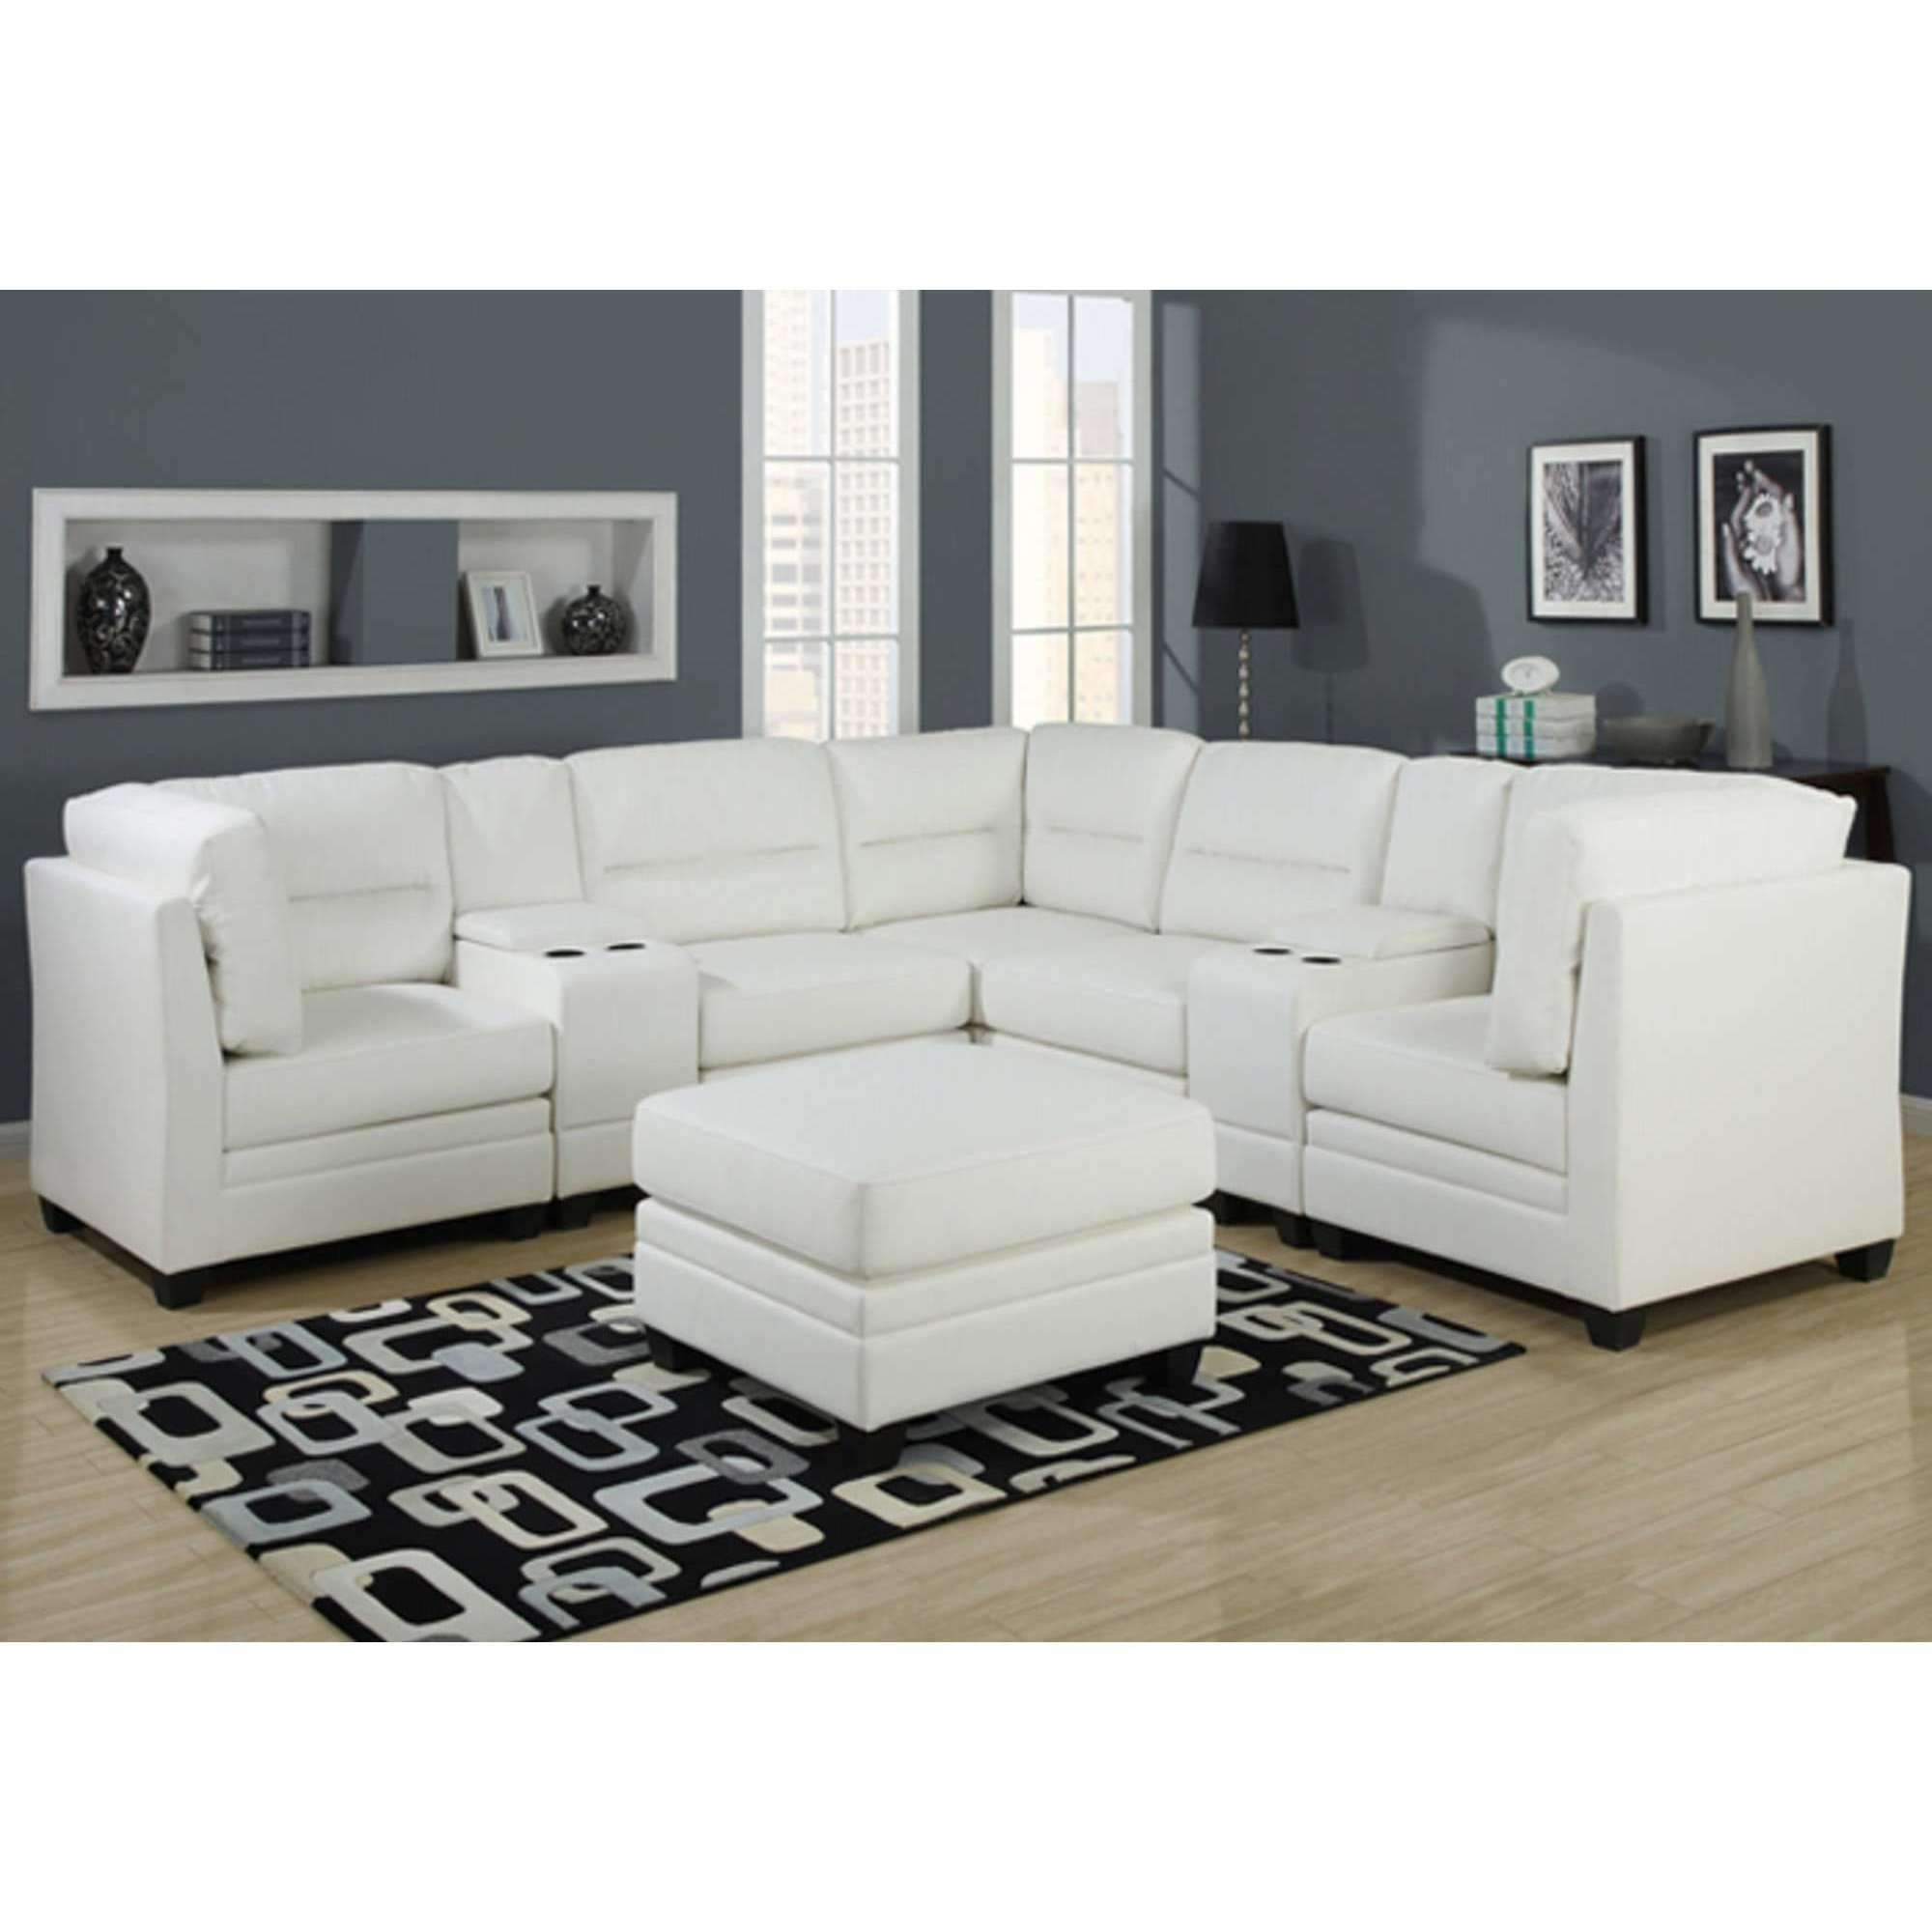 54 Cool White Leather Sofas For Sale In 2020 White Leather Sofas Sectional Sofa Leather Sectional Sofas